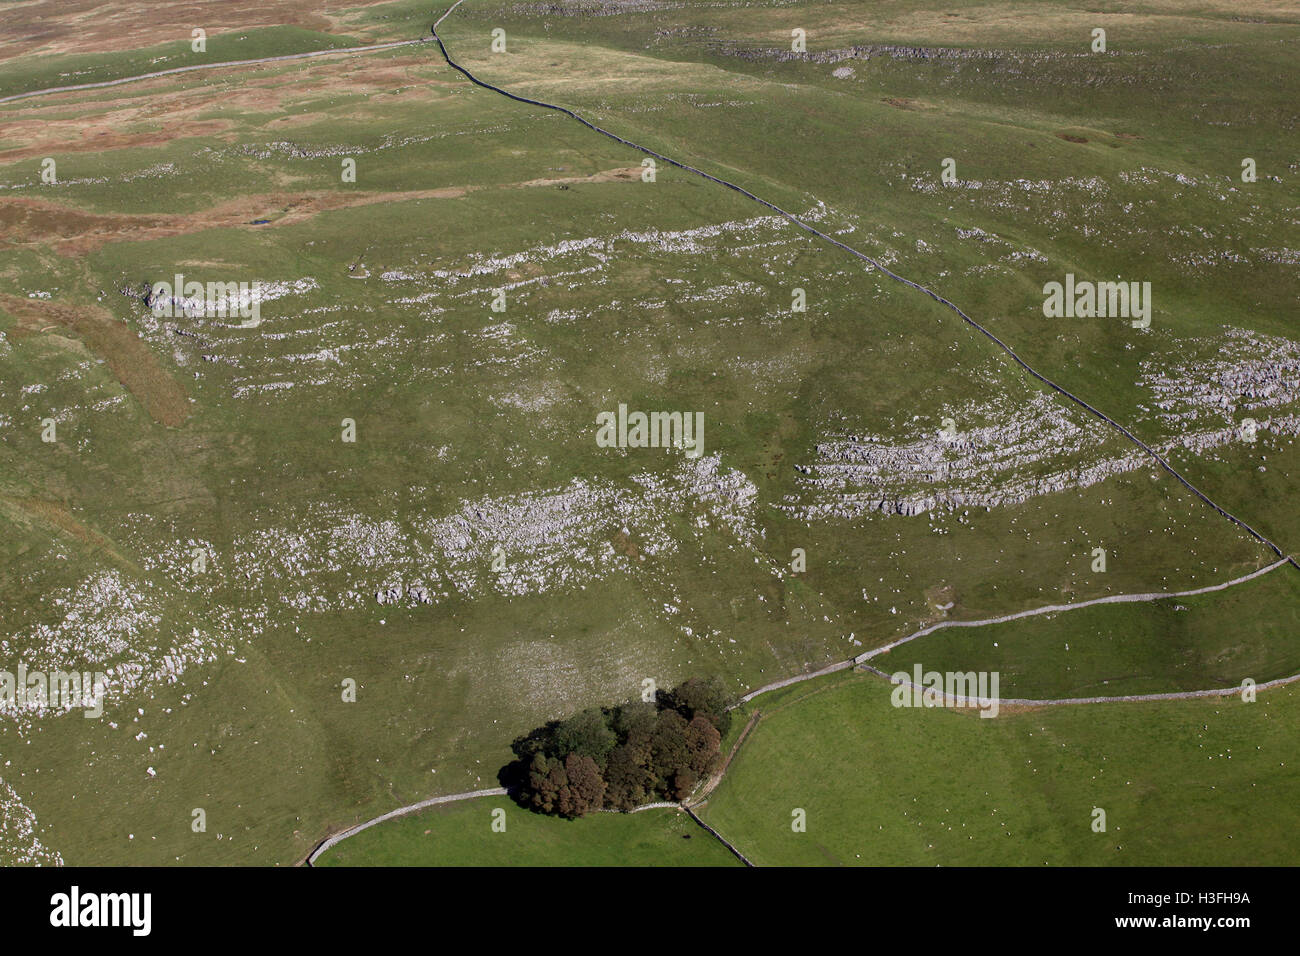 aerial view of a hillside escarpment in the Yorkshire Dales, UK - Stock Image